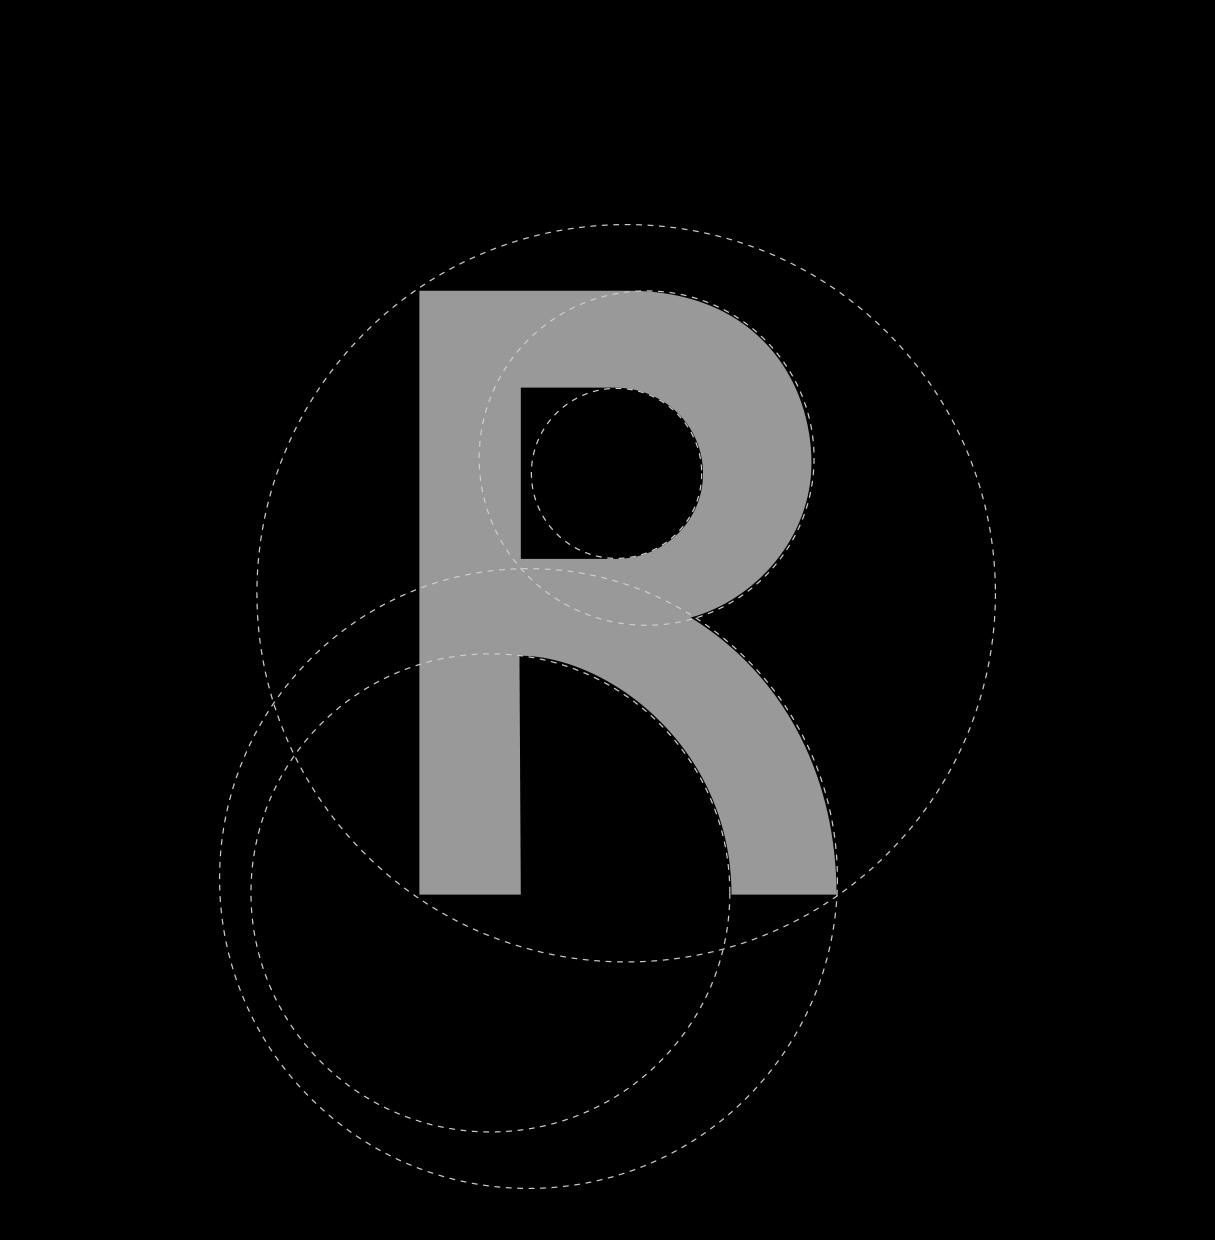 Construction of R in logo